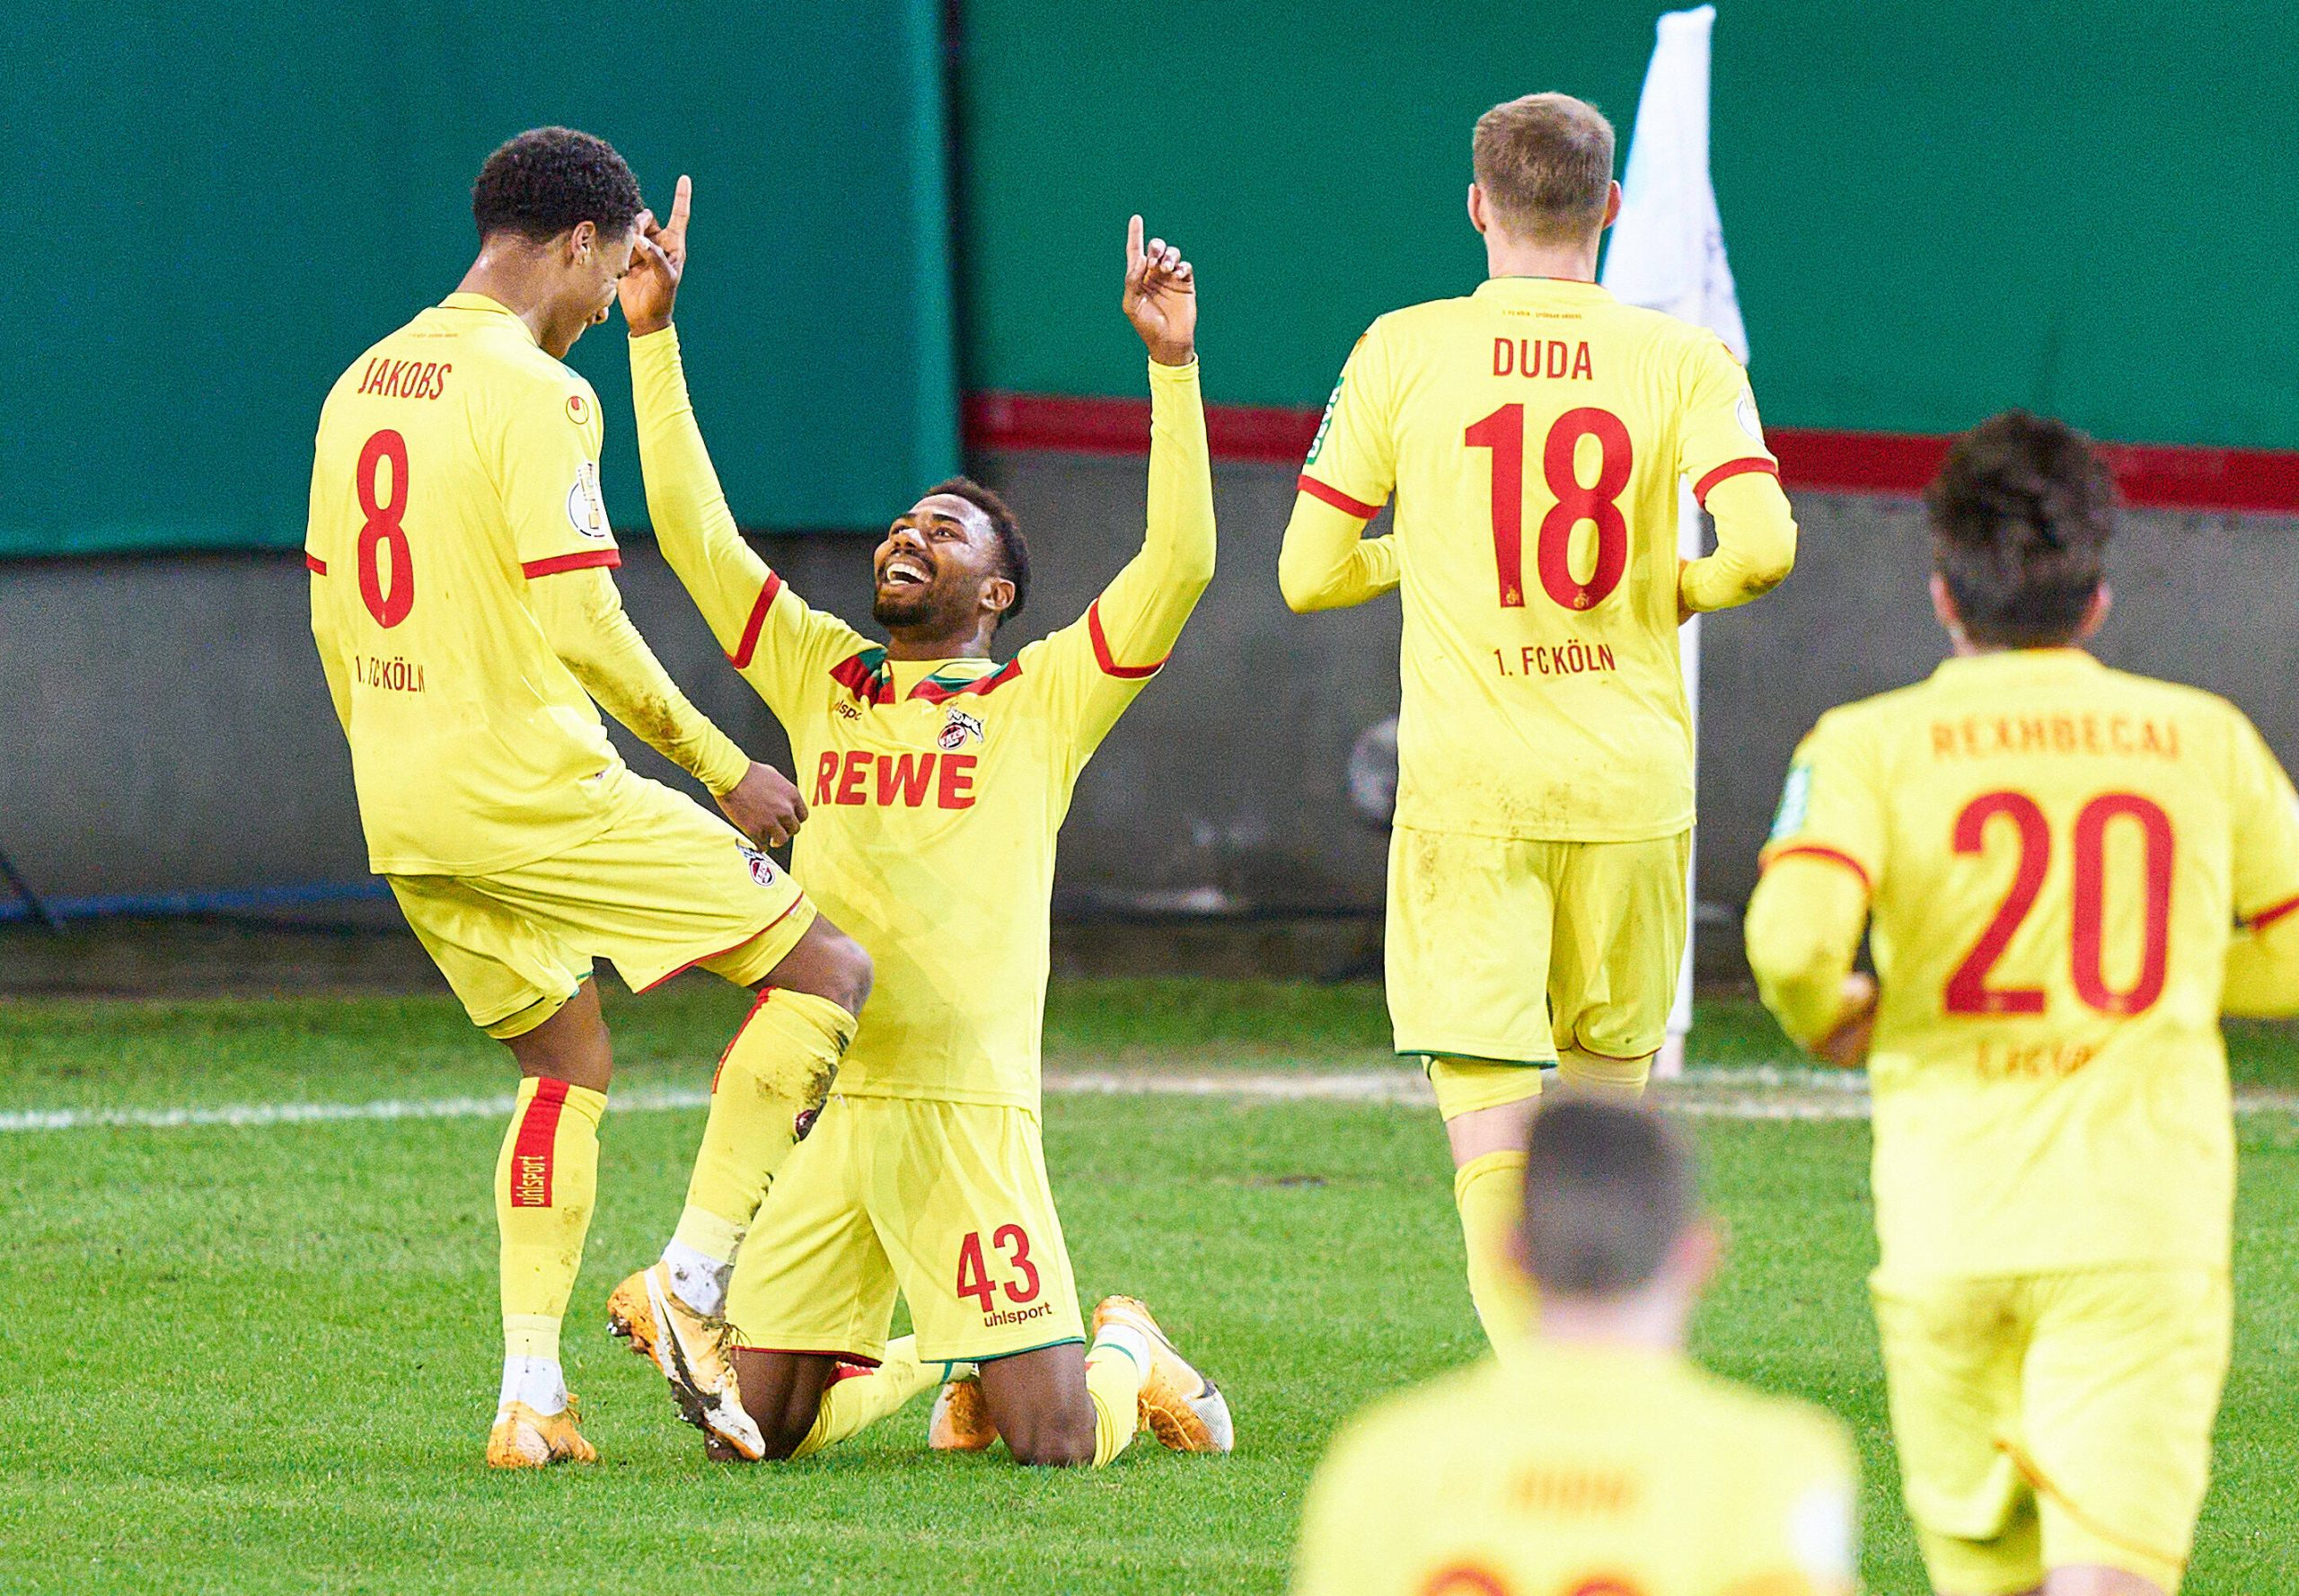 German Cup: Dennis Scores Misses Penalty As Cologne Lose To Second Division Club